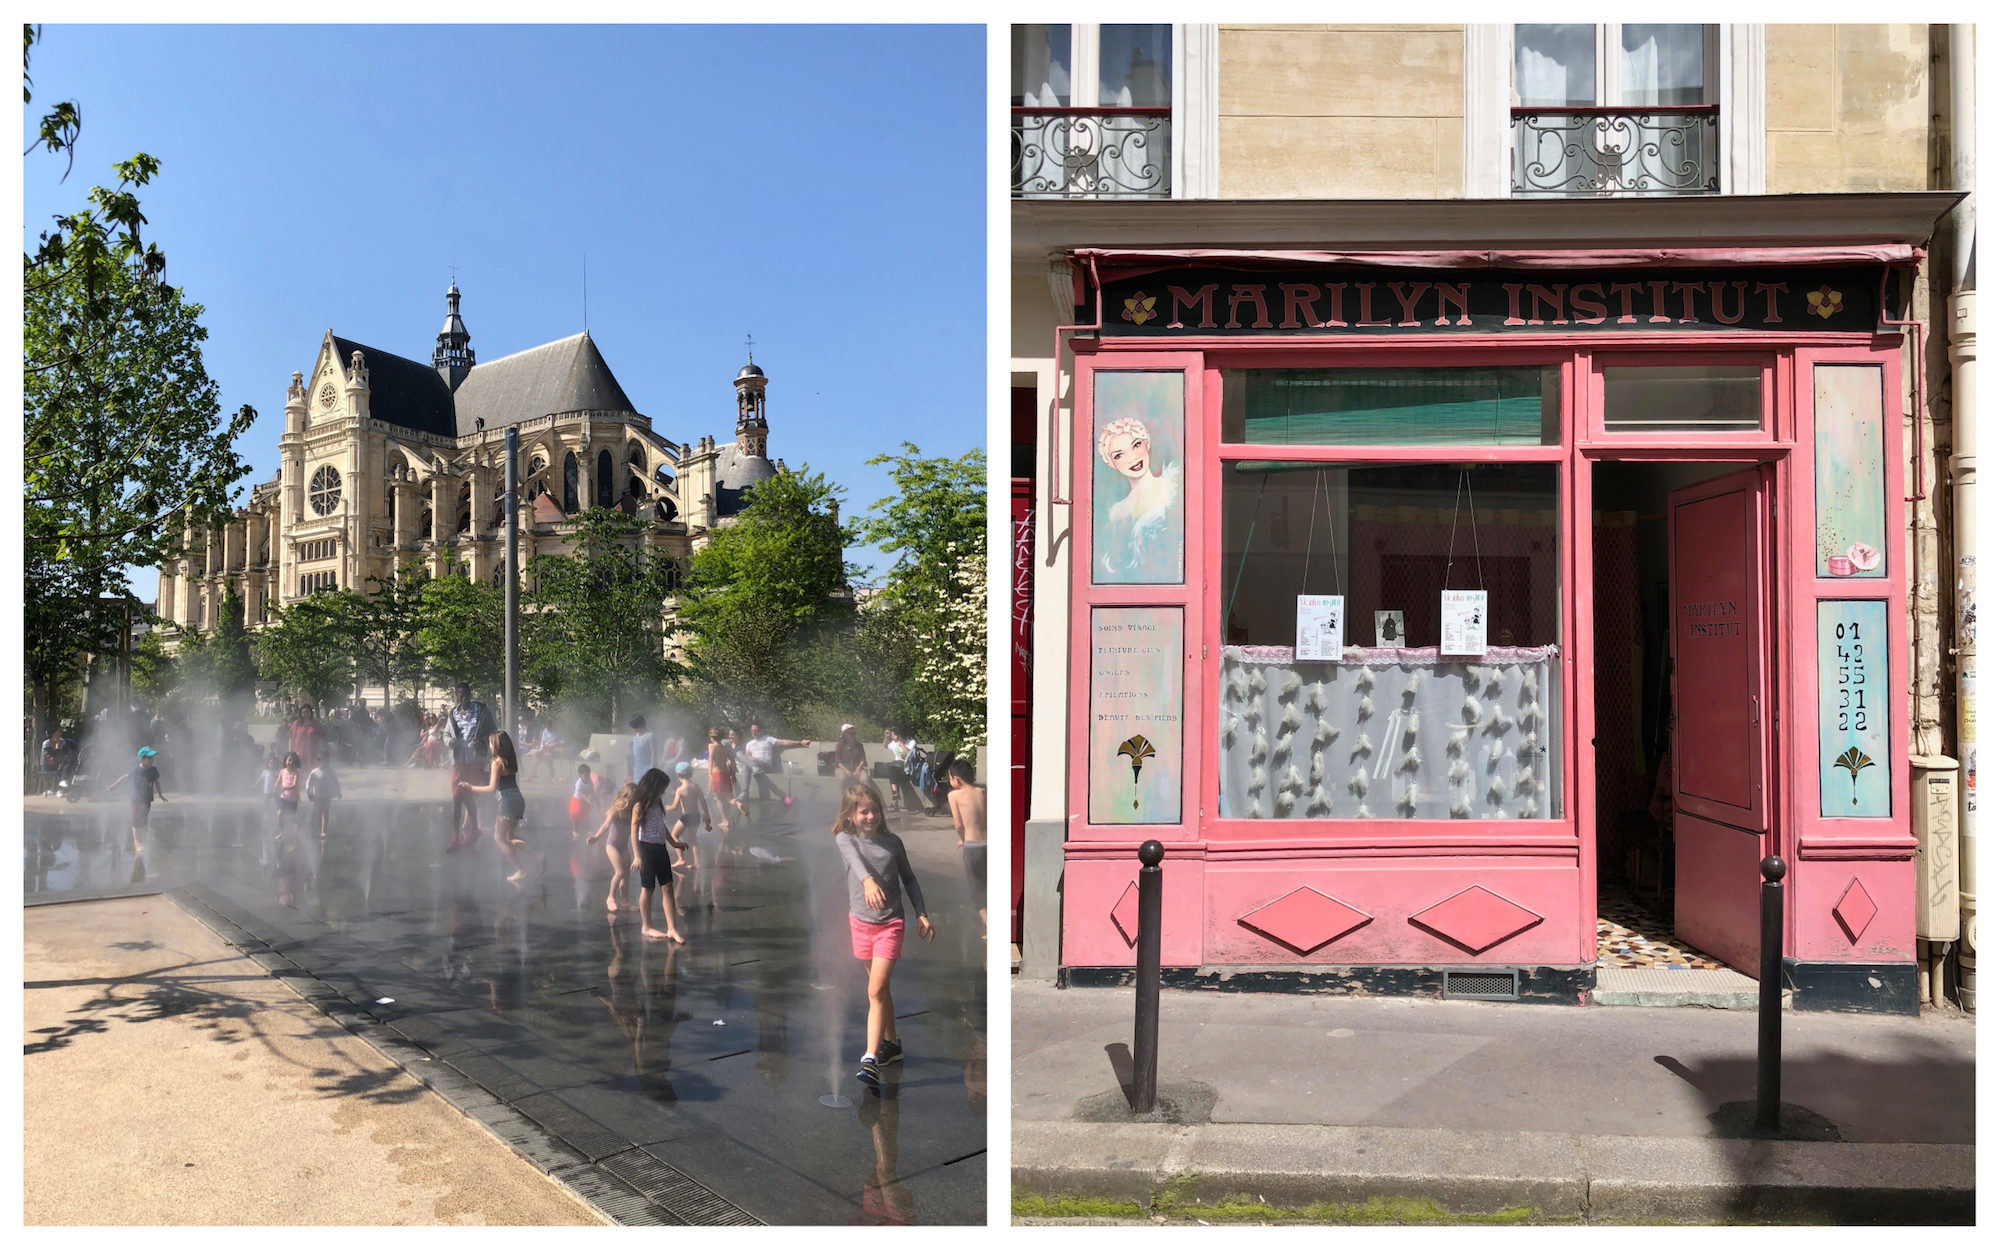 Kids playing in the fountains in summer in Paris (left). An old prink shop front in Paris (right).